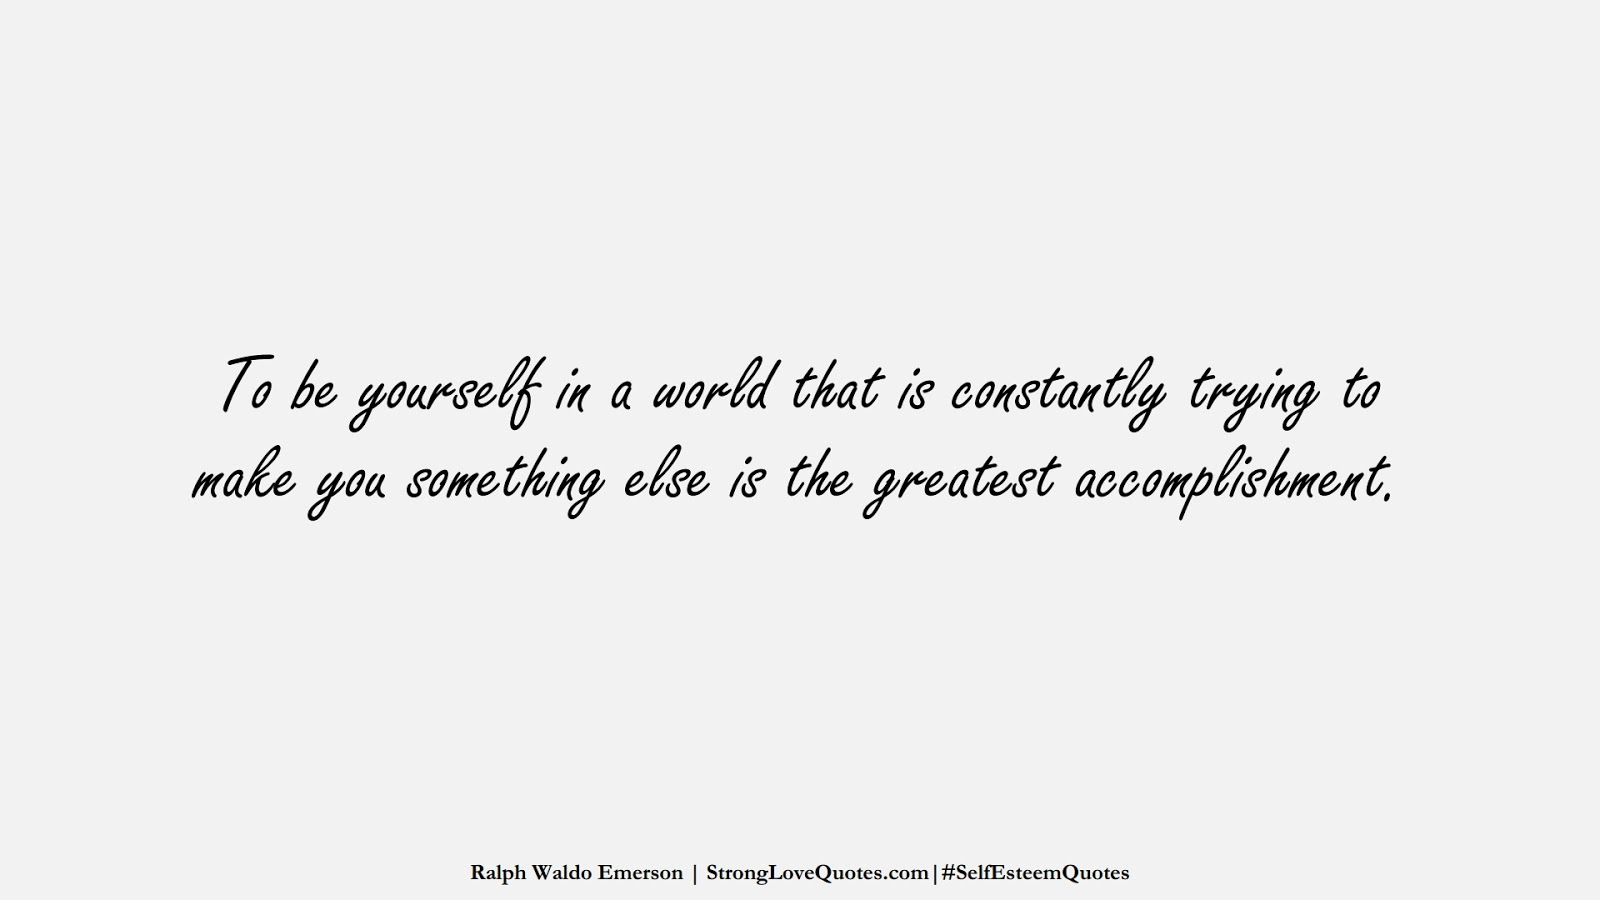 To be yourself in a world that is constantly trying to make you something else is the greatest accomplishment. (Ralph Waldo Emerson);  #SelfEsteemQuotes